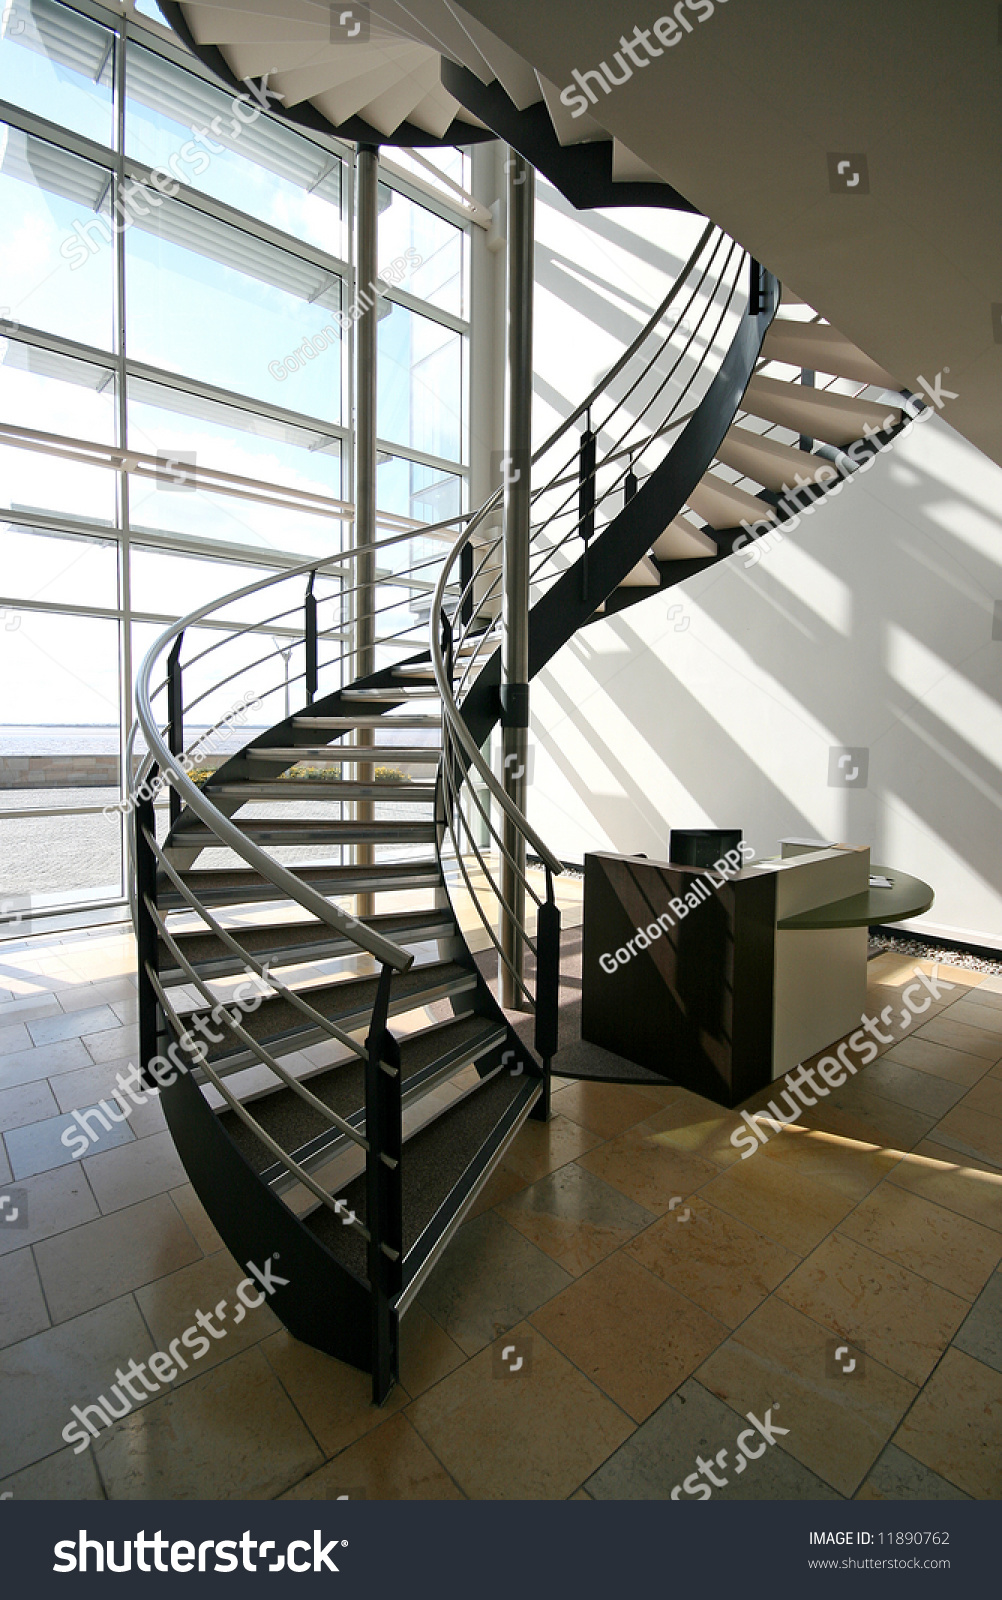 Metal spiral staircase modern building stock photo for Aluminum spiral staircase prices